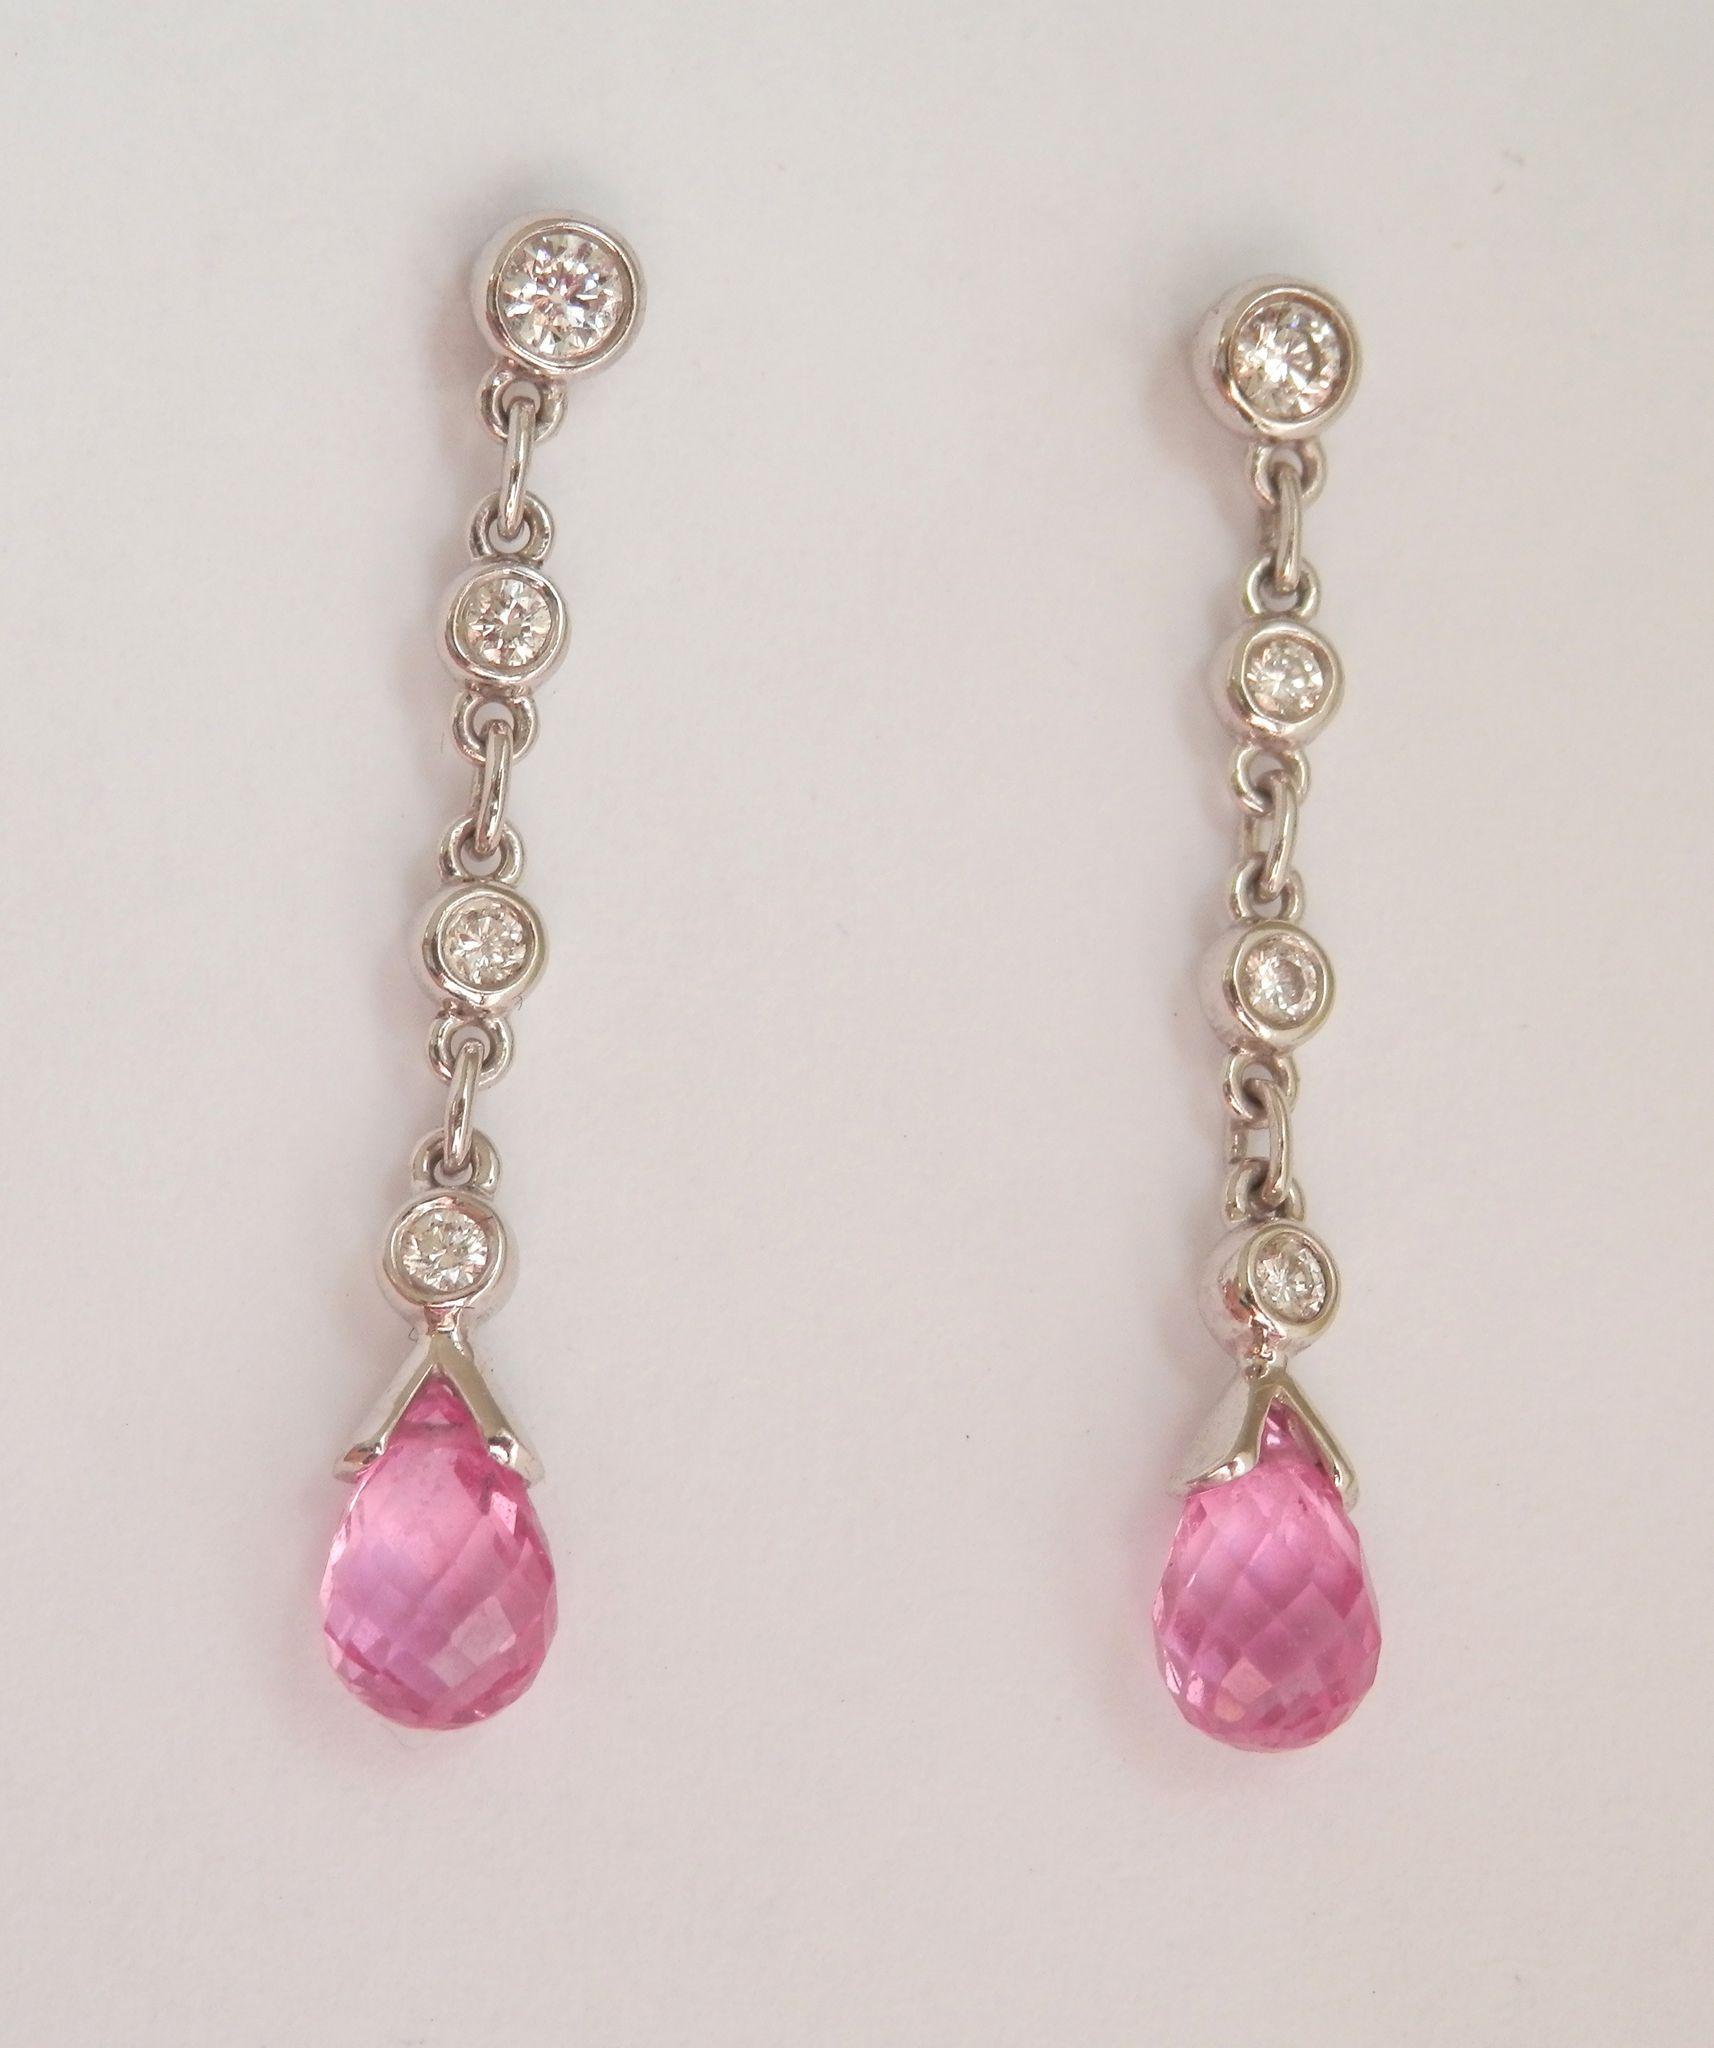 ON HOLD Lovely! 18K W/Gold Pink Sapphire Briolette Diamond Drop Earrings